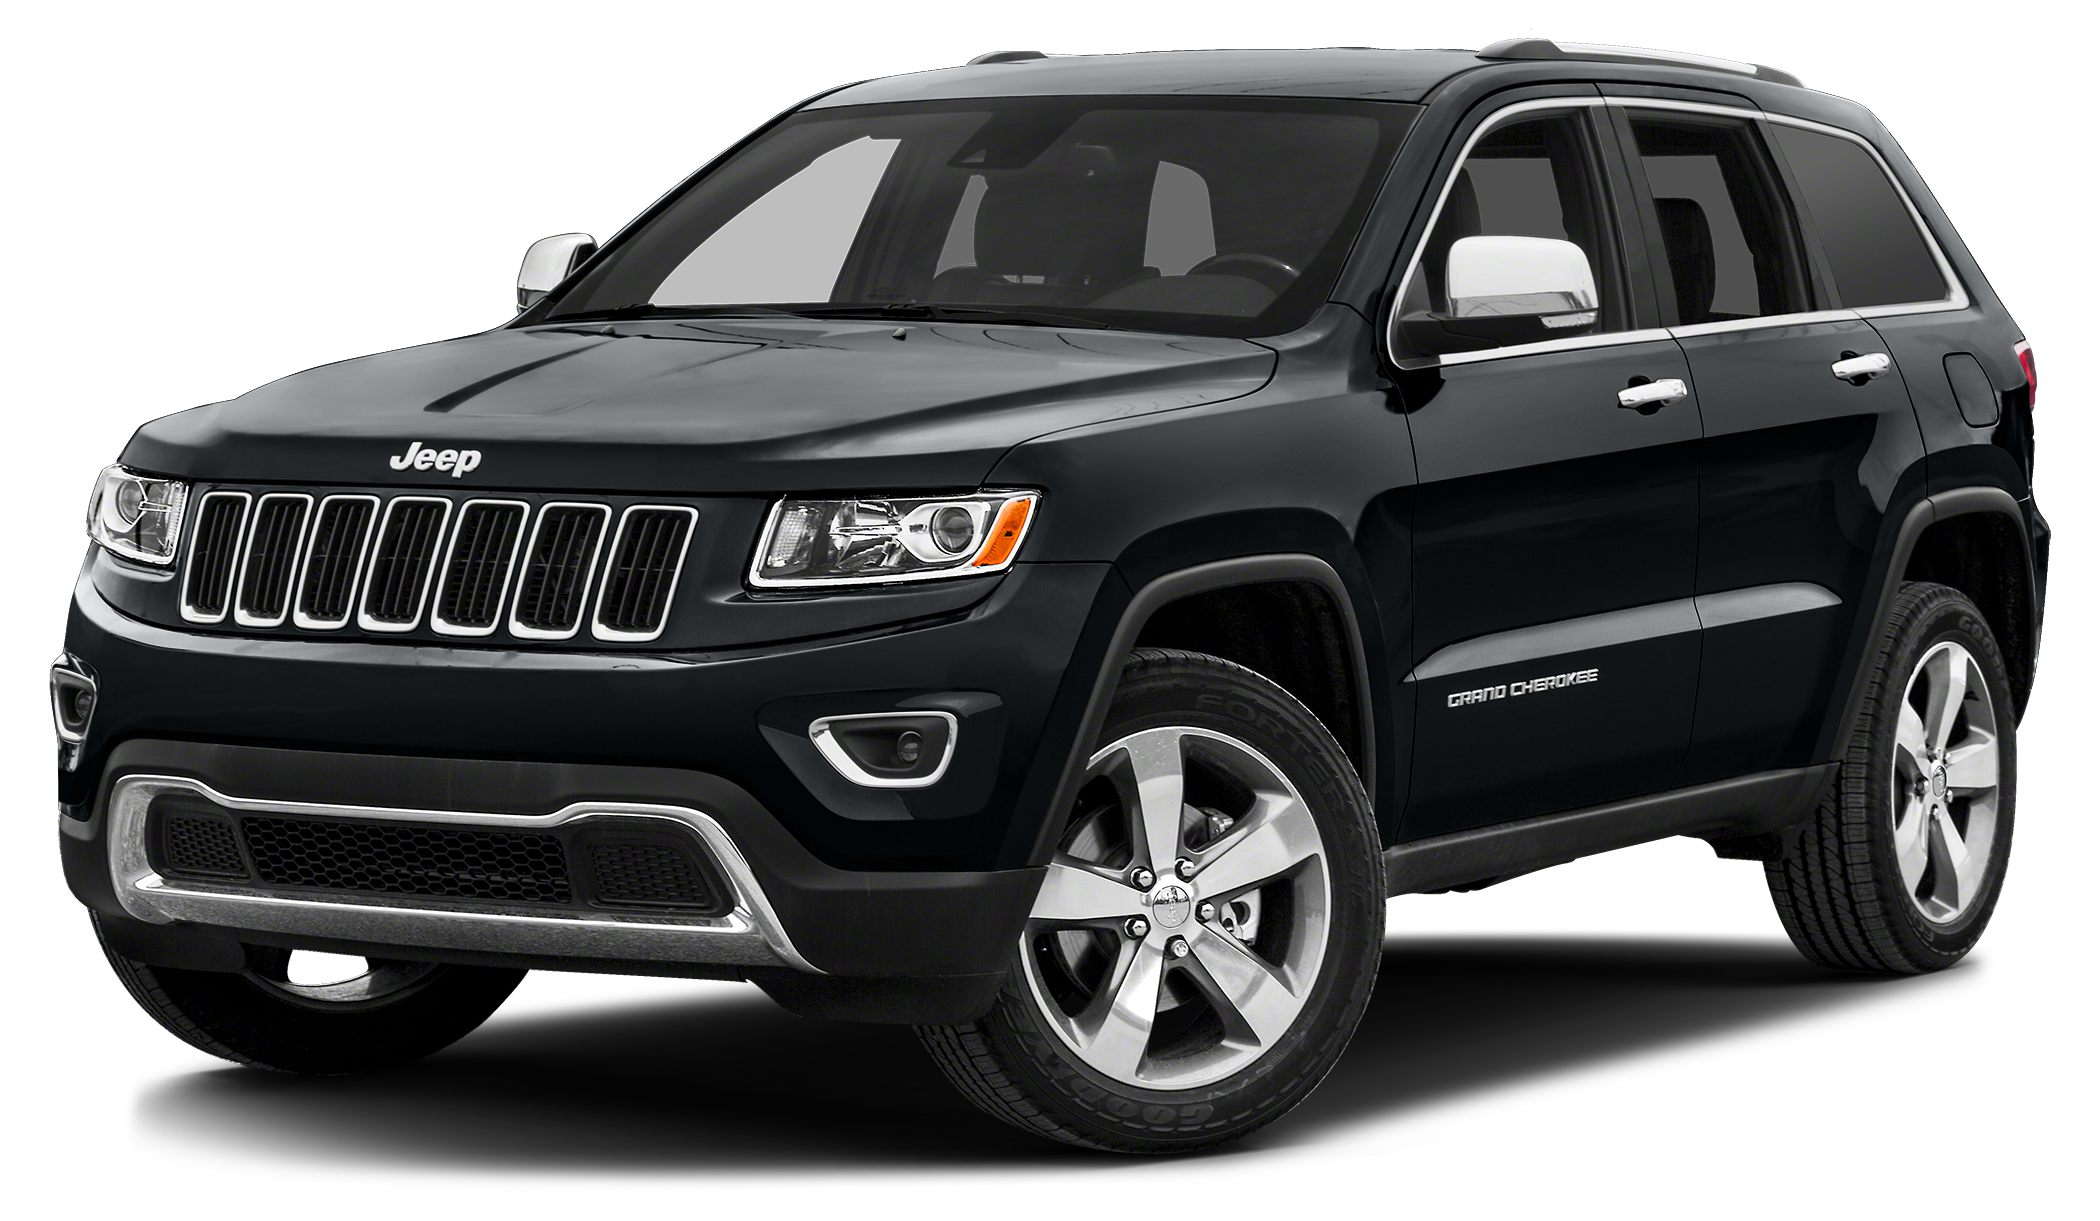 2016 Jeep Grand Cherokee Limited Stunning This really is a great vehicle for your active lifesty